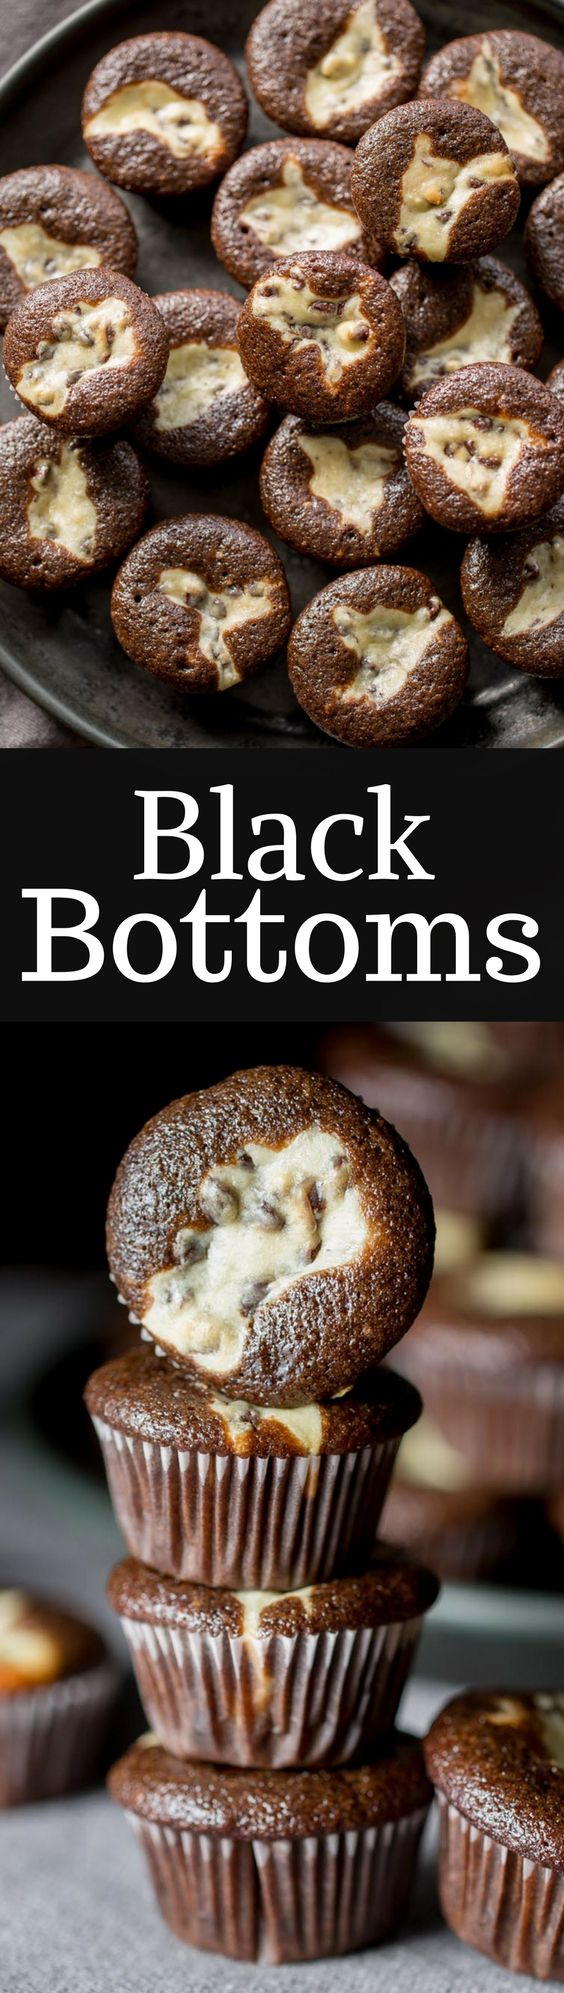 Mini Black Bottoms - a delicious fudgy cake topped with a cheesecake dough mixed with mini chocolate chips. So easy to make and super easy to eat! www.savingdessert.com